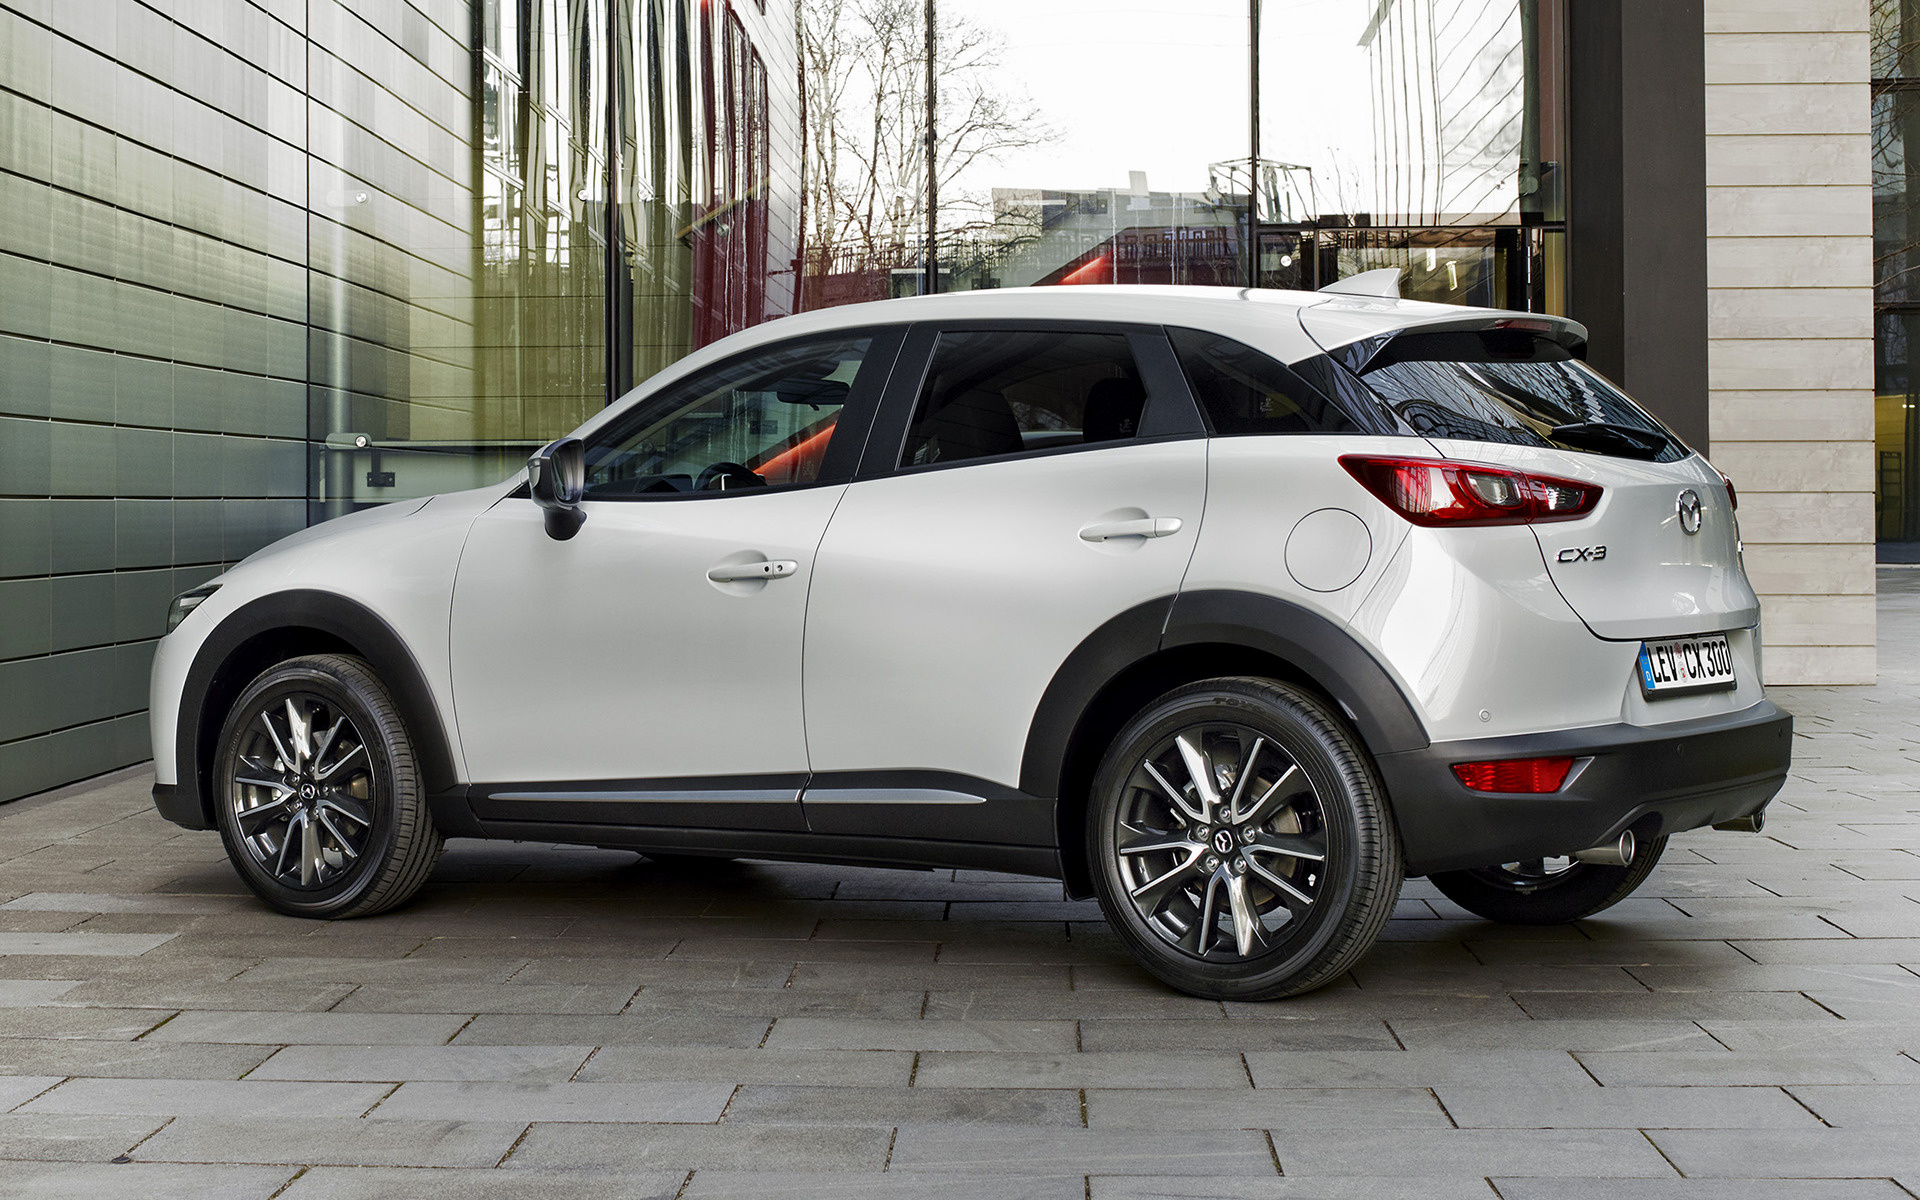 Mazda Cx 3 >> 2015 Mazda CX-3 - Wallpapers and HD Images | Car Pixel